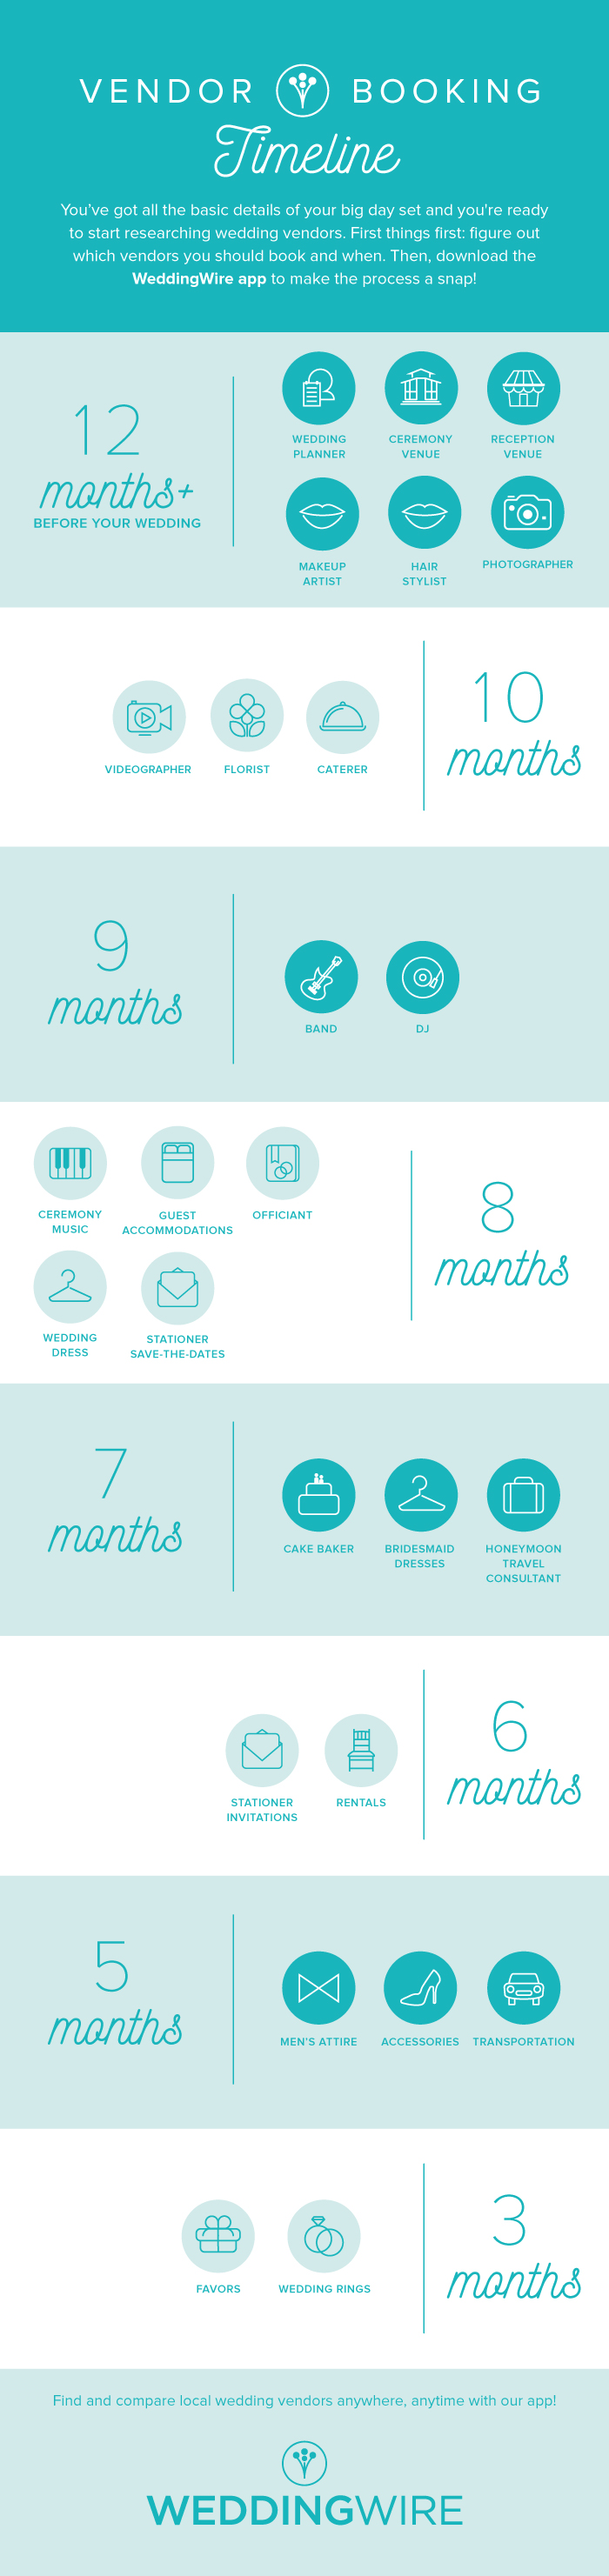 Wedding-Vendor-Booking-Timeline